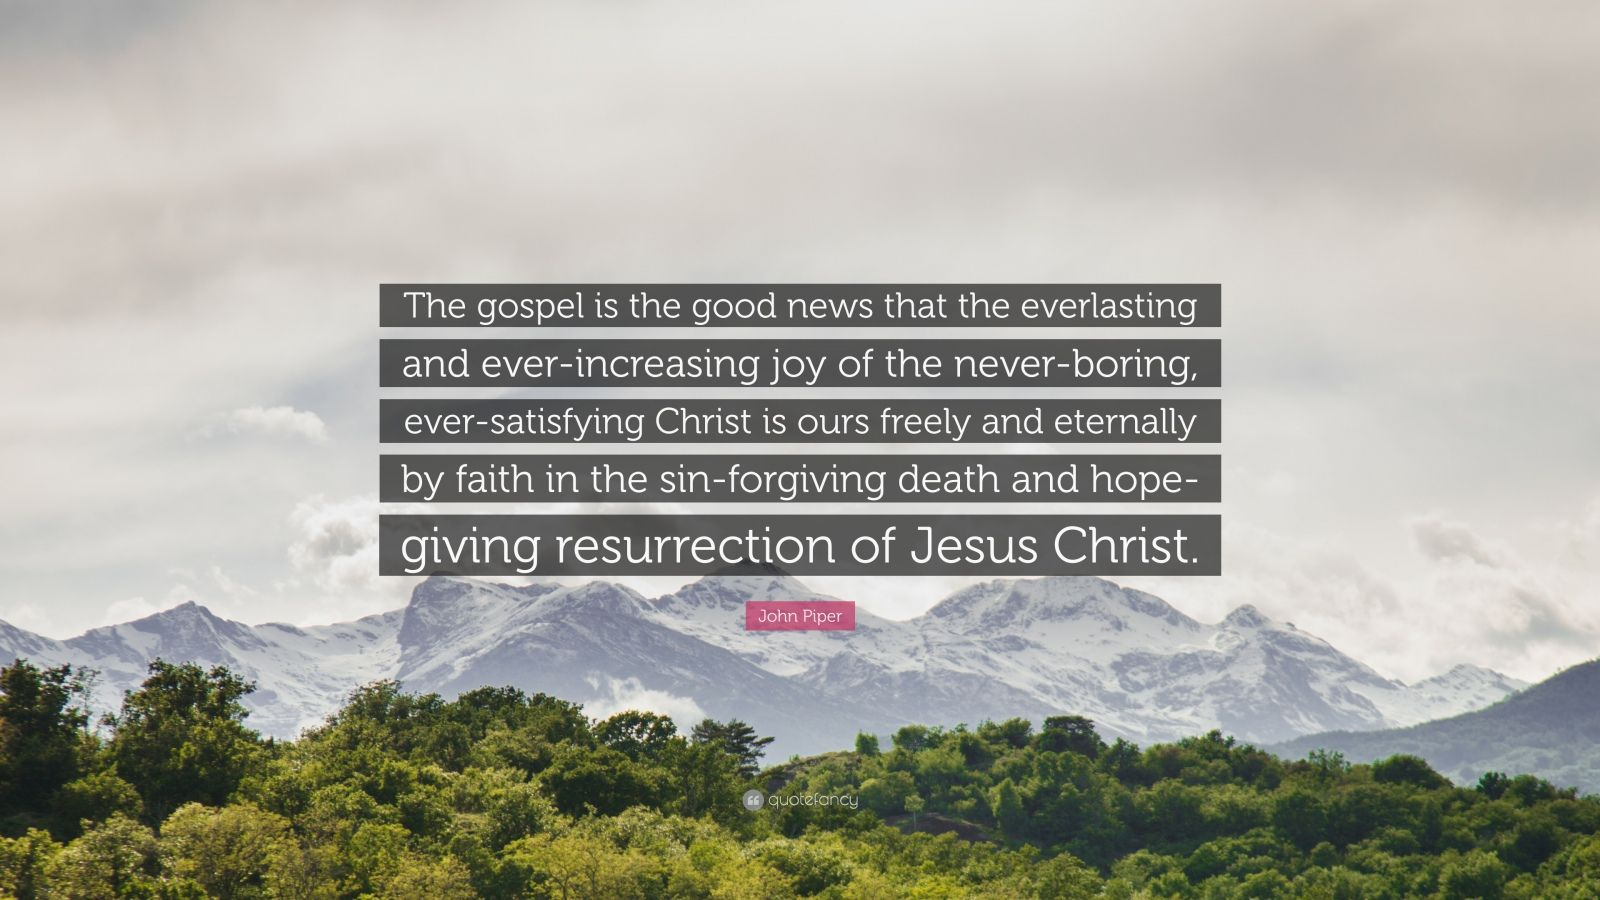 "John Piper Quote: ""The gospel is the good news that the everlasting and ever-increasing joy of the never-boring, ever-satisfying Christ is ours freely and eternally by faith in the sin-forgiving death and hope-giving resurrection of Jesus Christ."""